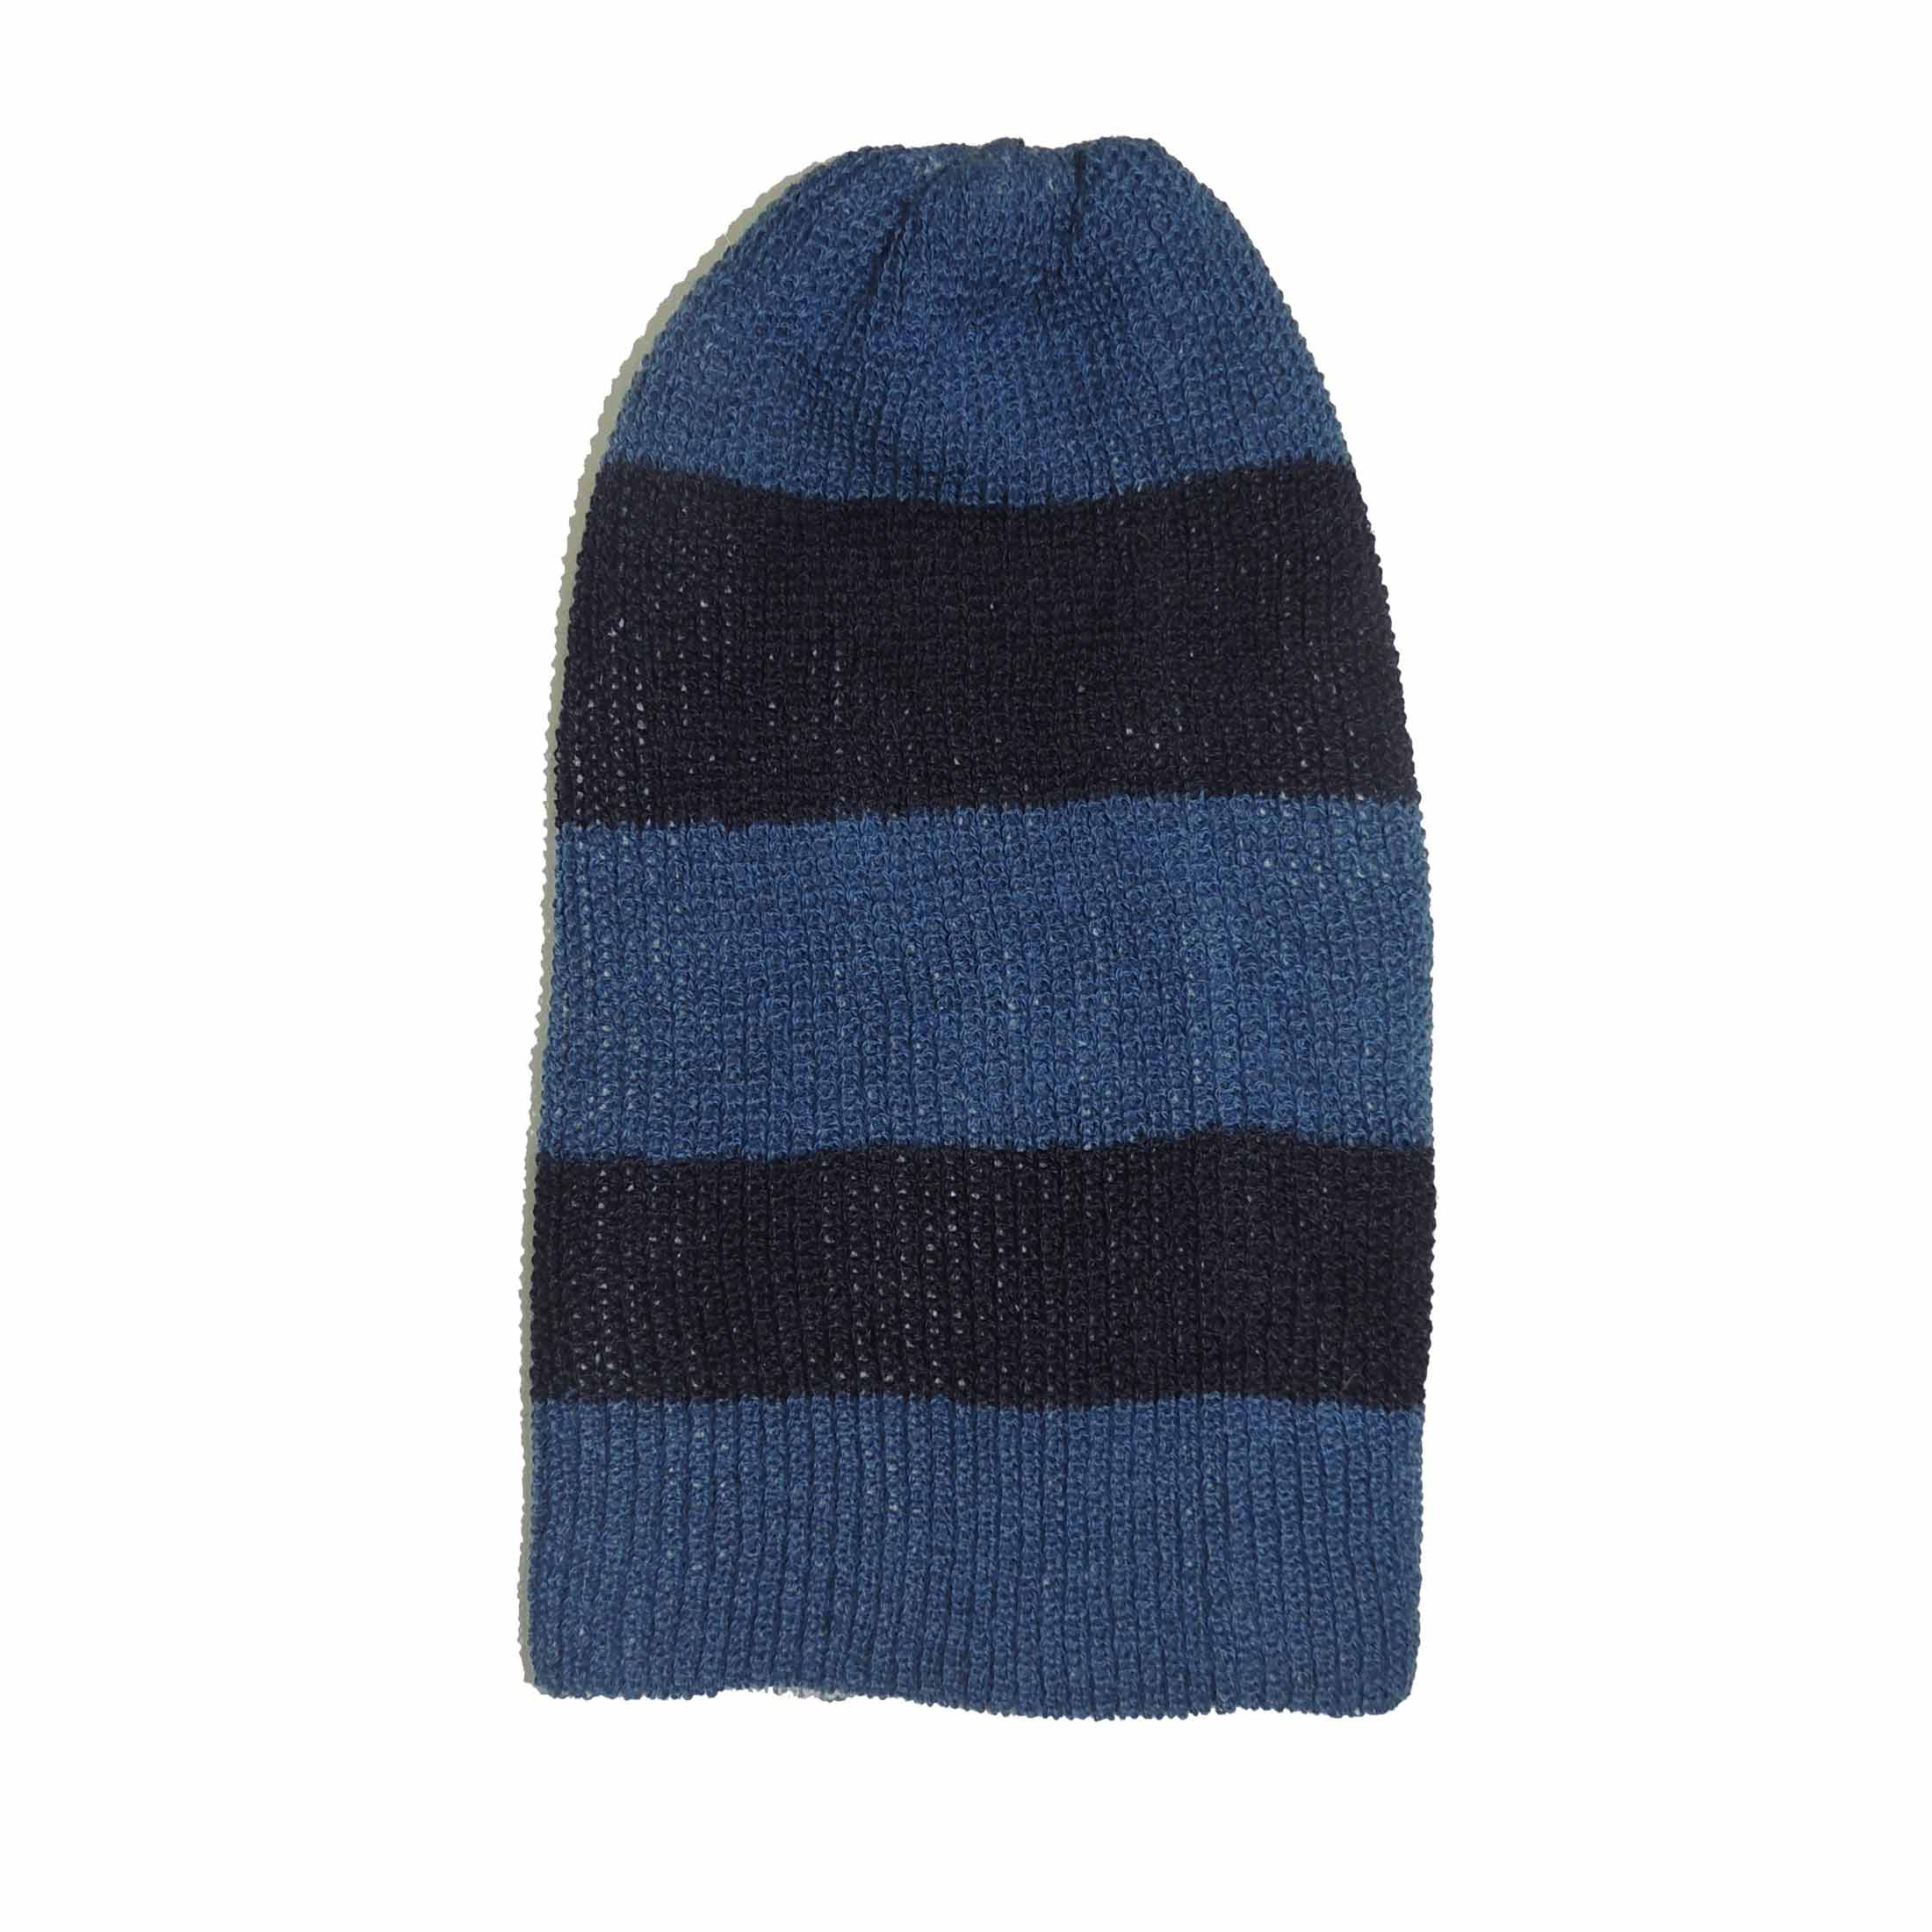 PopsFL wholesale producer PFL Knitwear fine knitted beanie, 100% baby alpaca in different color combinations and designs.